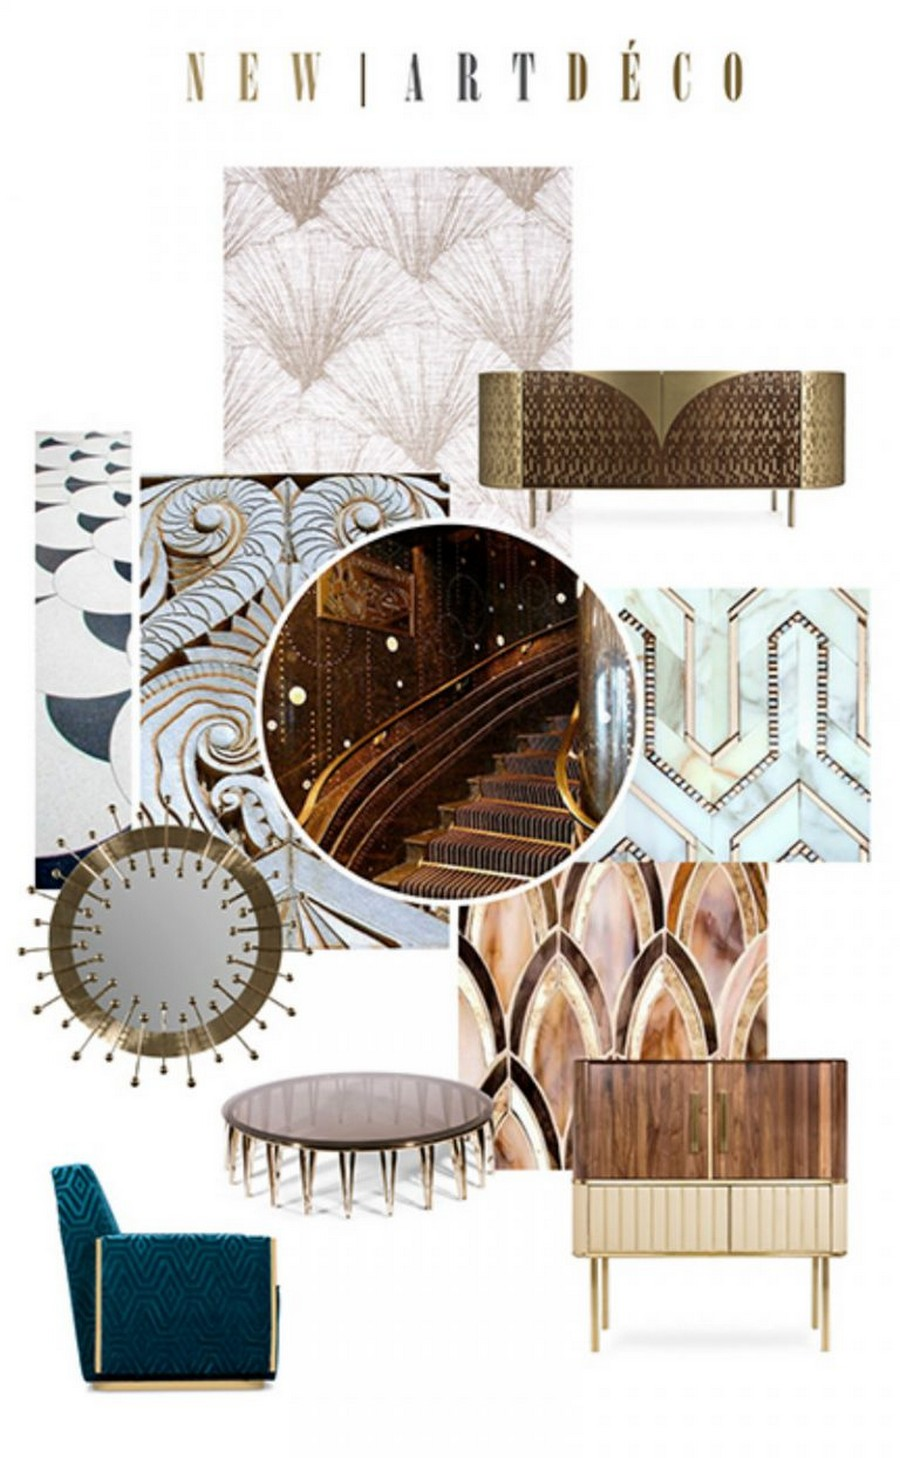 We have the Moodboards you Need for some Design Inspiration design inspiration We have the Moodboards you Need for some Design Inspiration Searching for Some Design Inspiration We Have The Moodboards You Need 7 768x1244